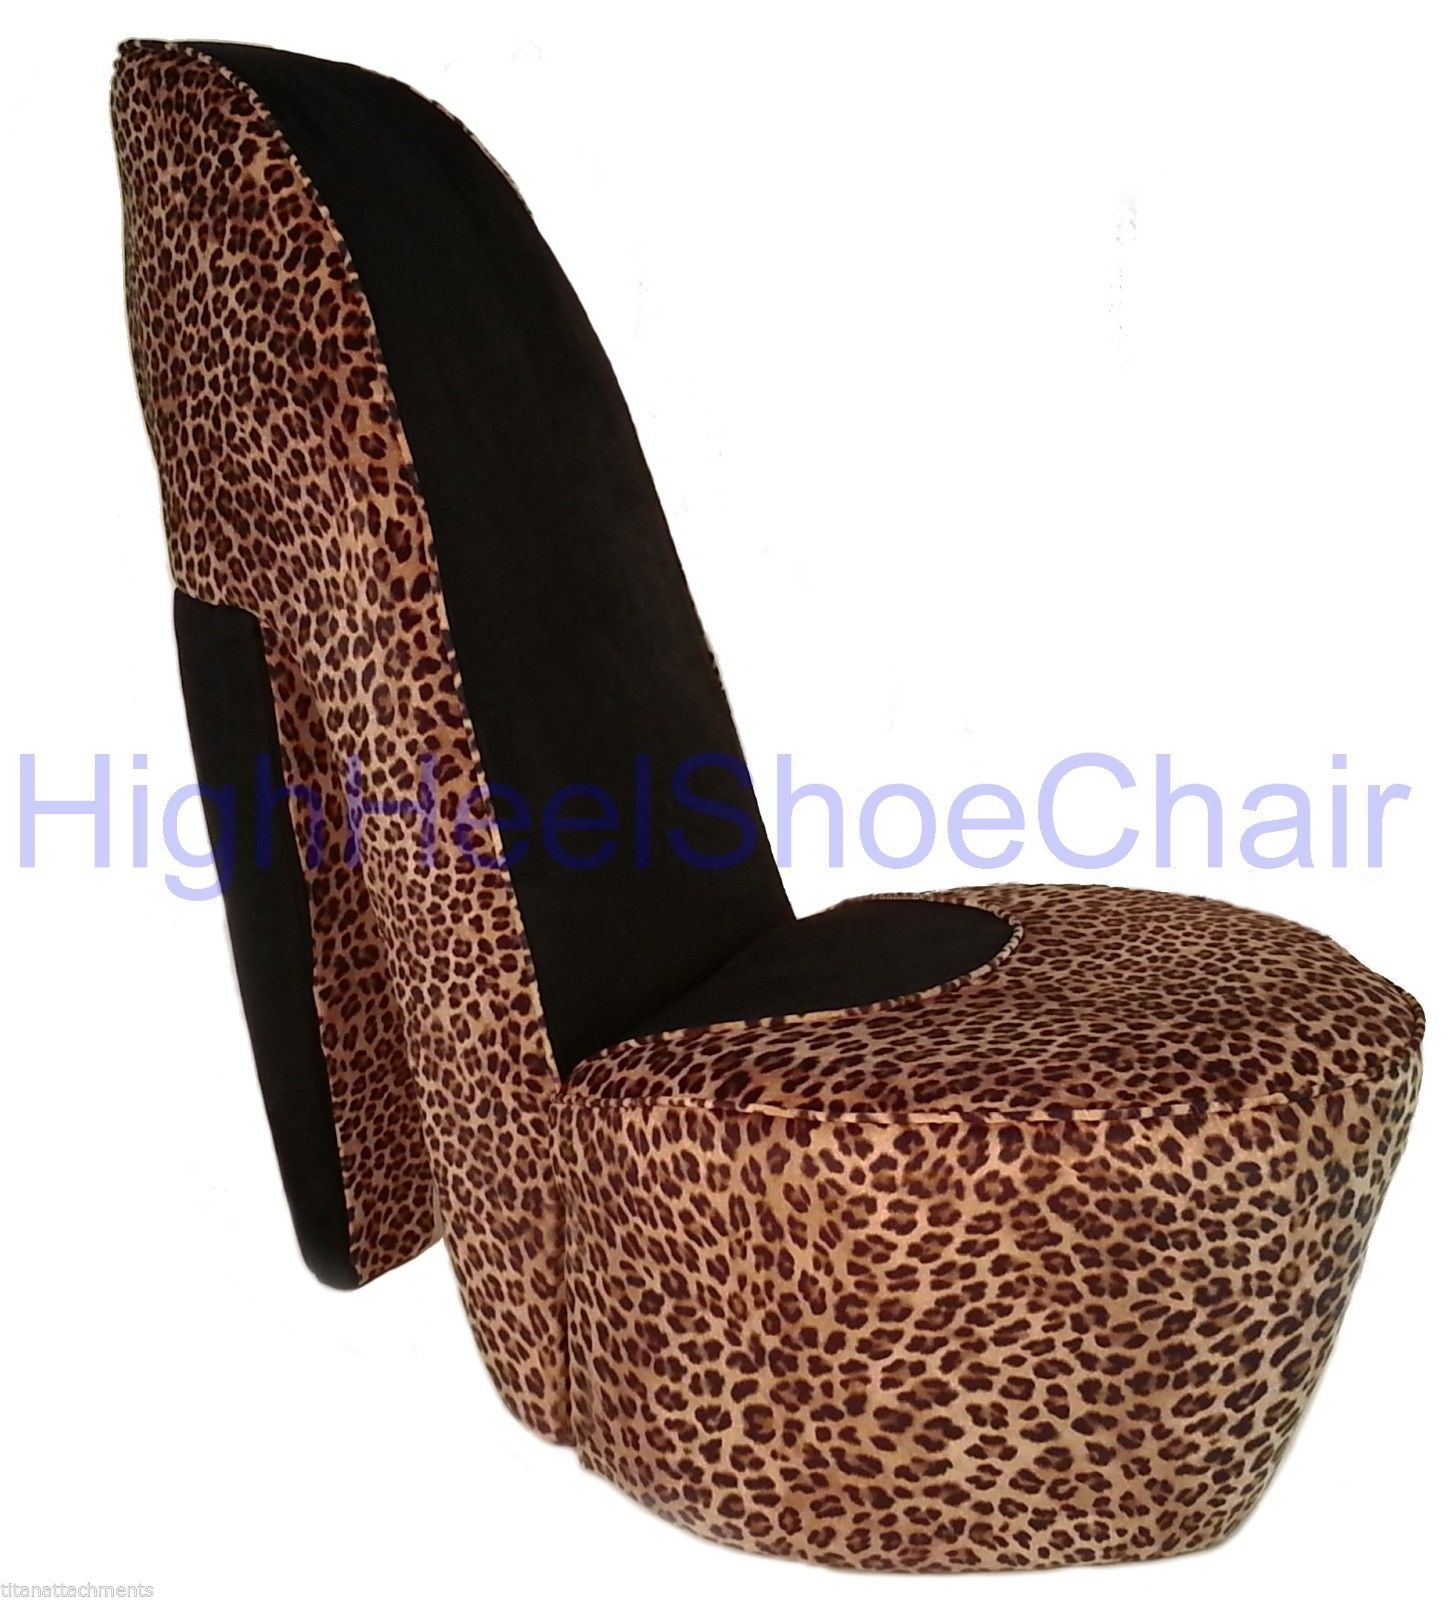 Cheetah Print Chair Home Chair Designs Intended For Heel Chair Sofas (Image 3 of 15)